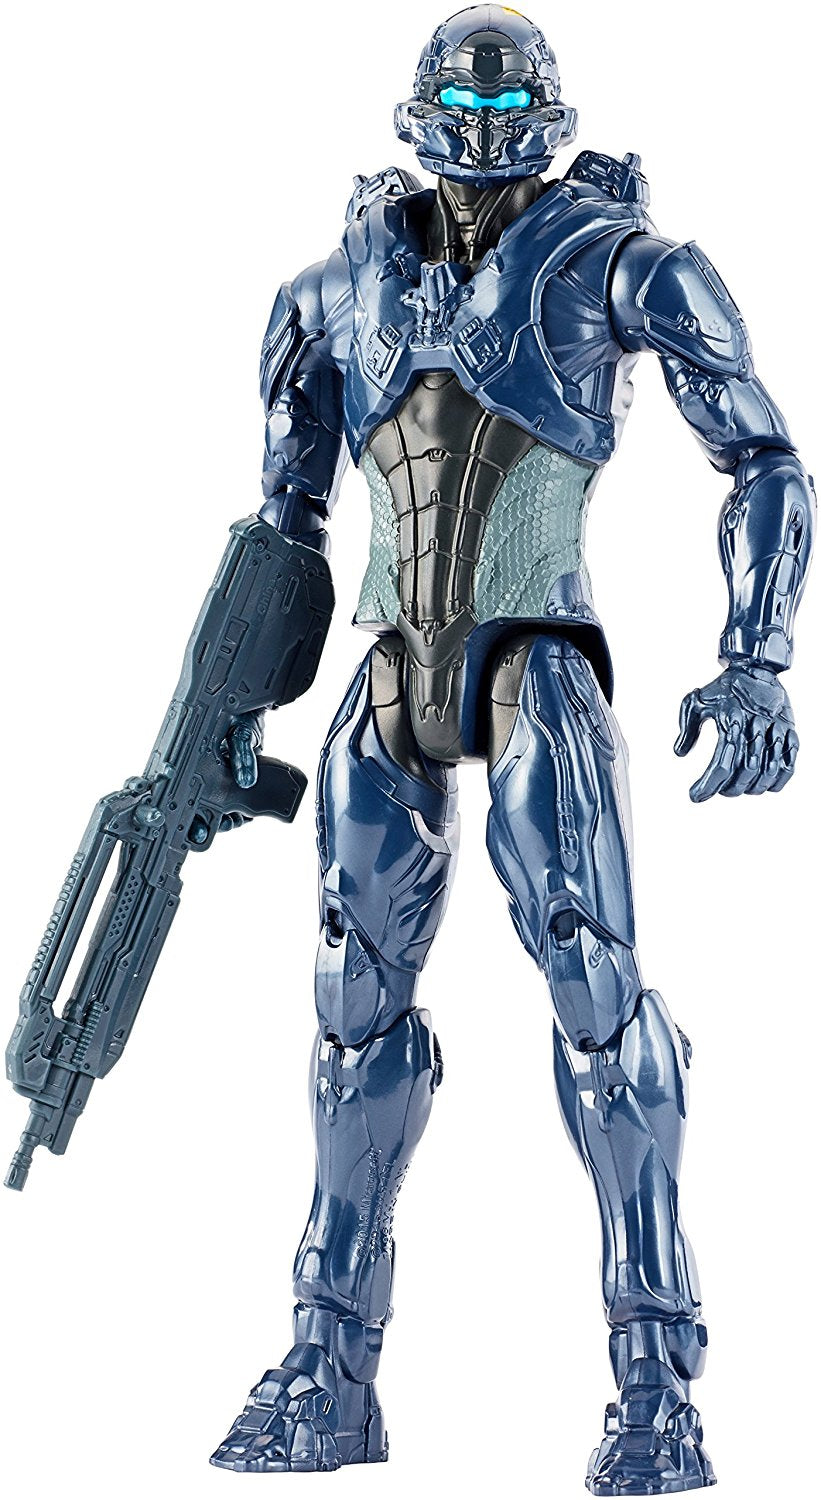 Halo Highly Poseable Spartan Locke Character 12